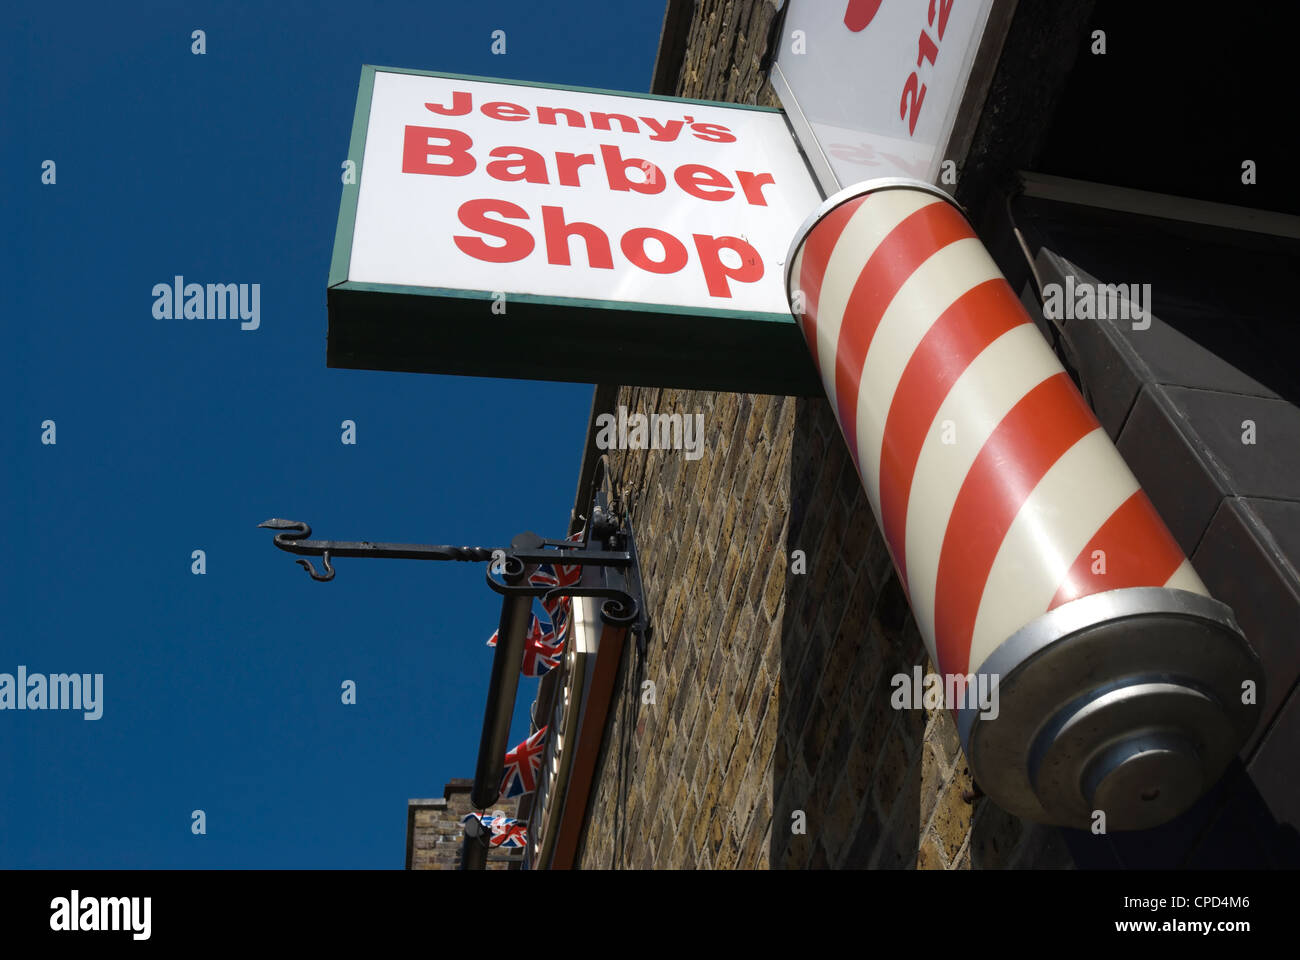 barber's shop sign with traditional red and white revolving pole, east sheen, southwest london, england - Stock Image